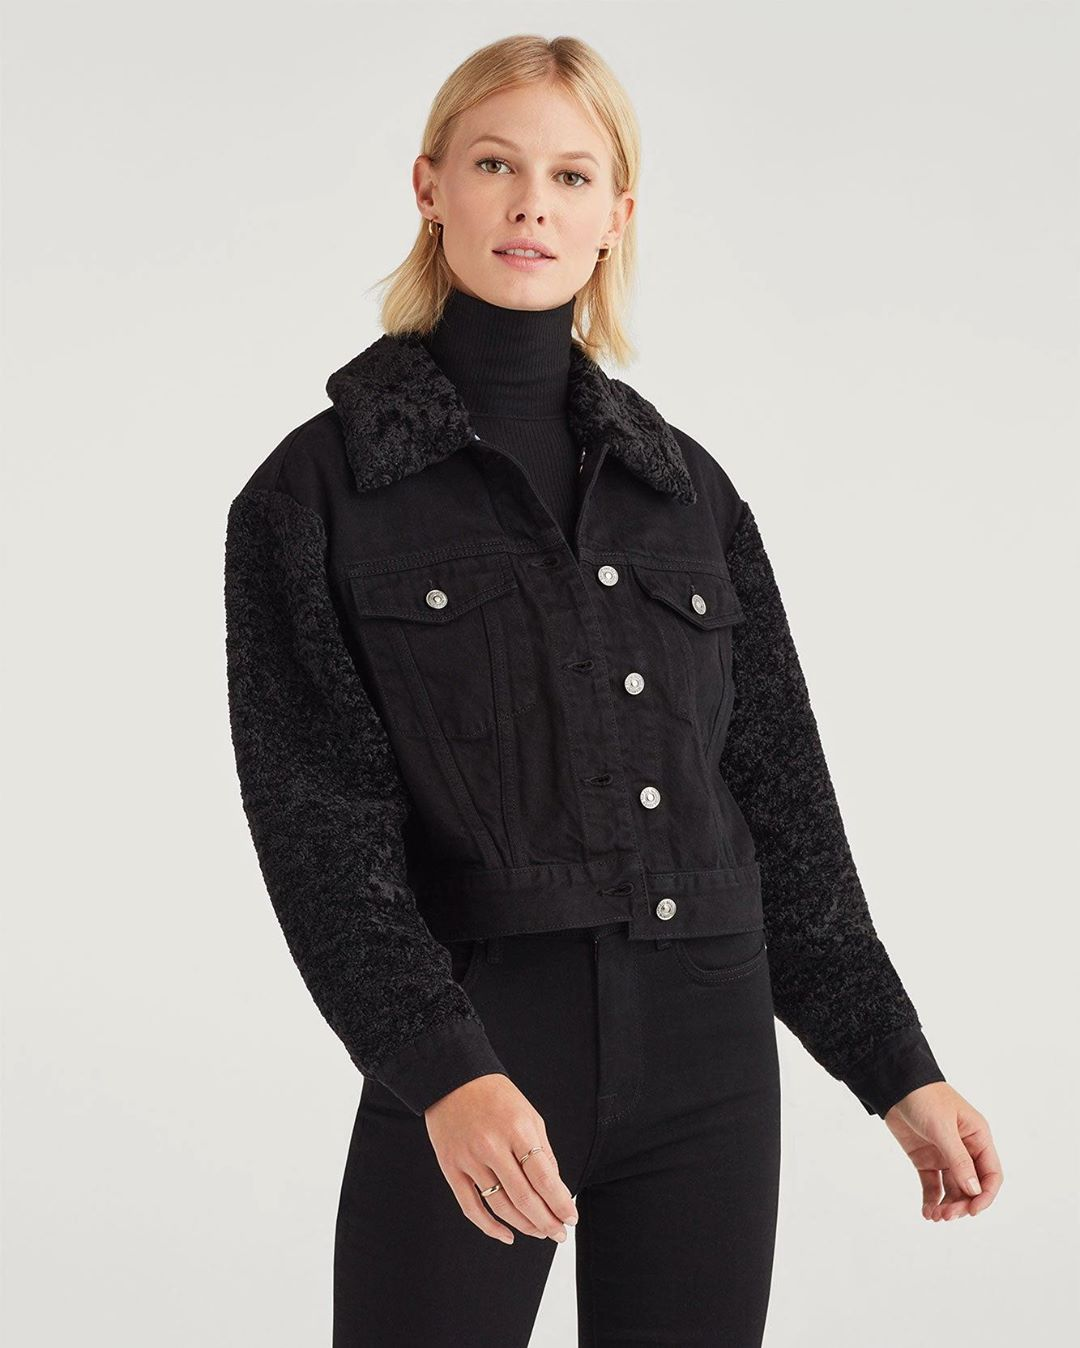 Jacket with Removable Faux Fur Collar in Overdyed Black